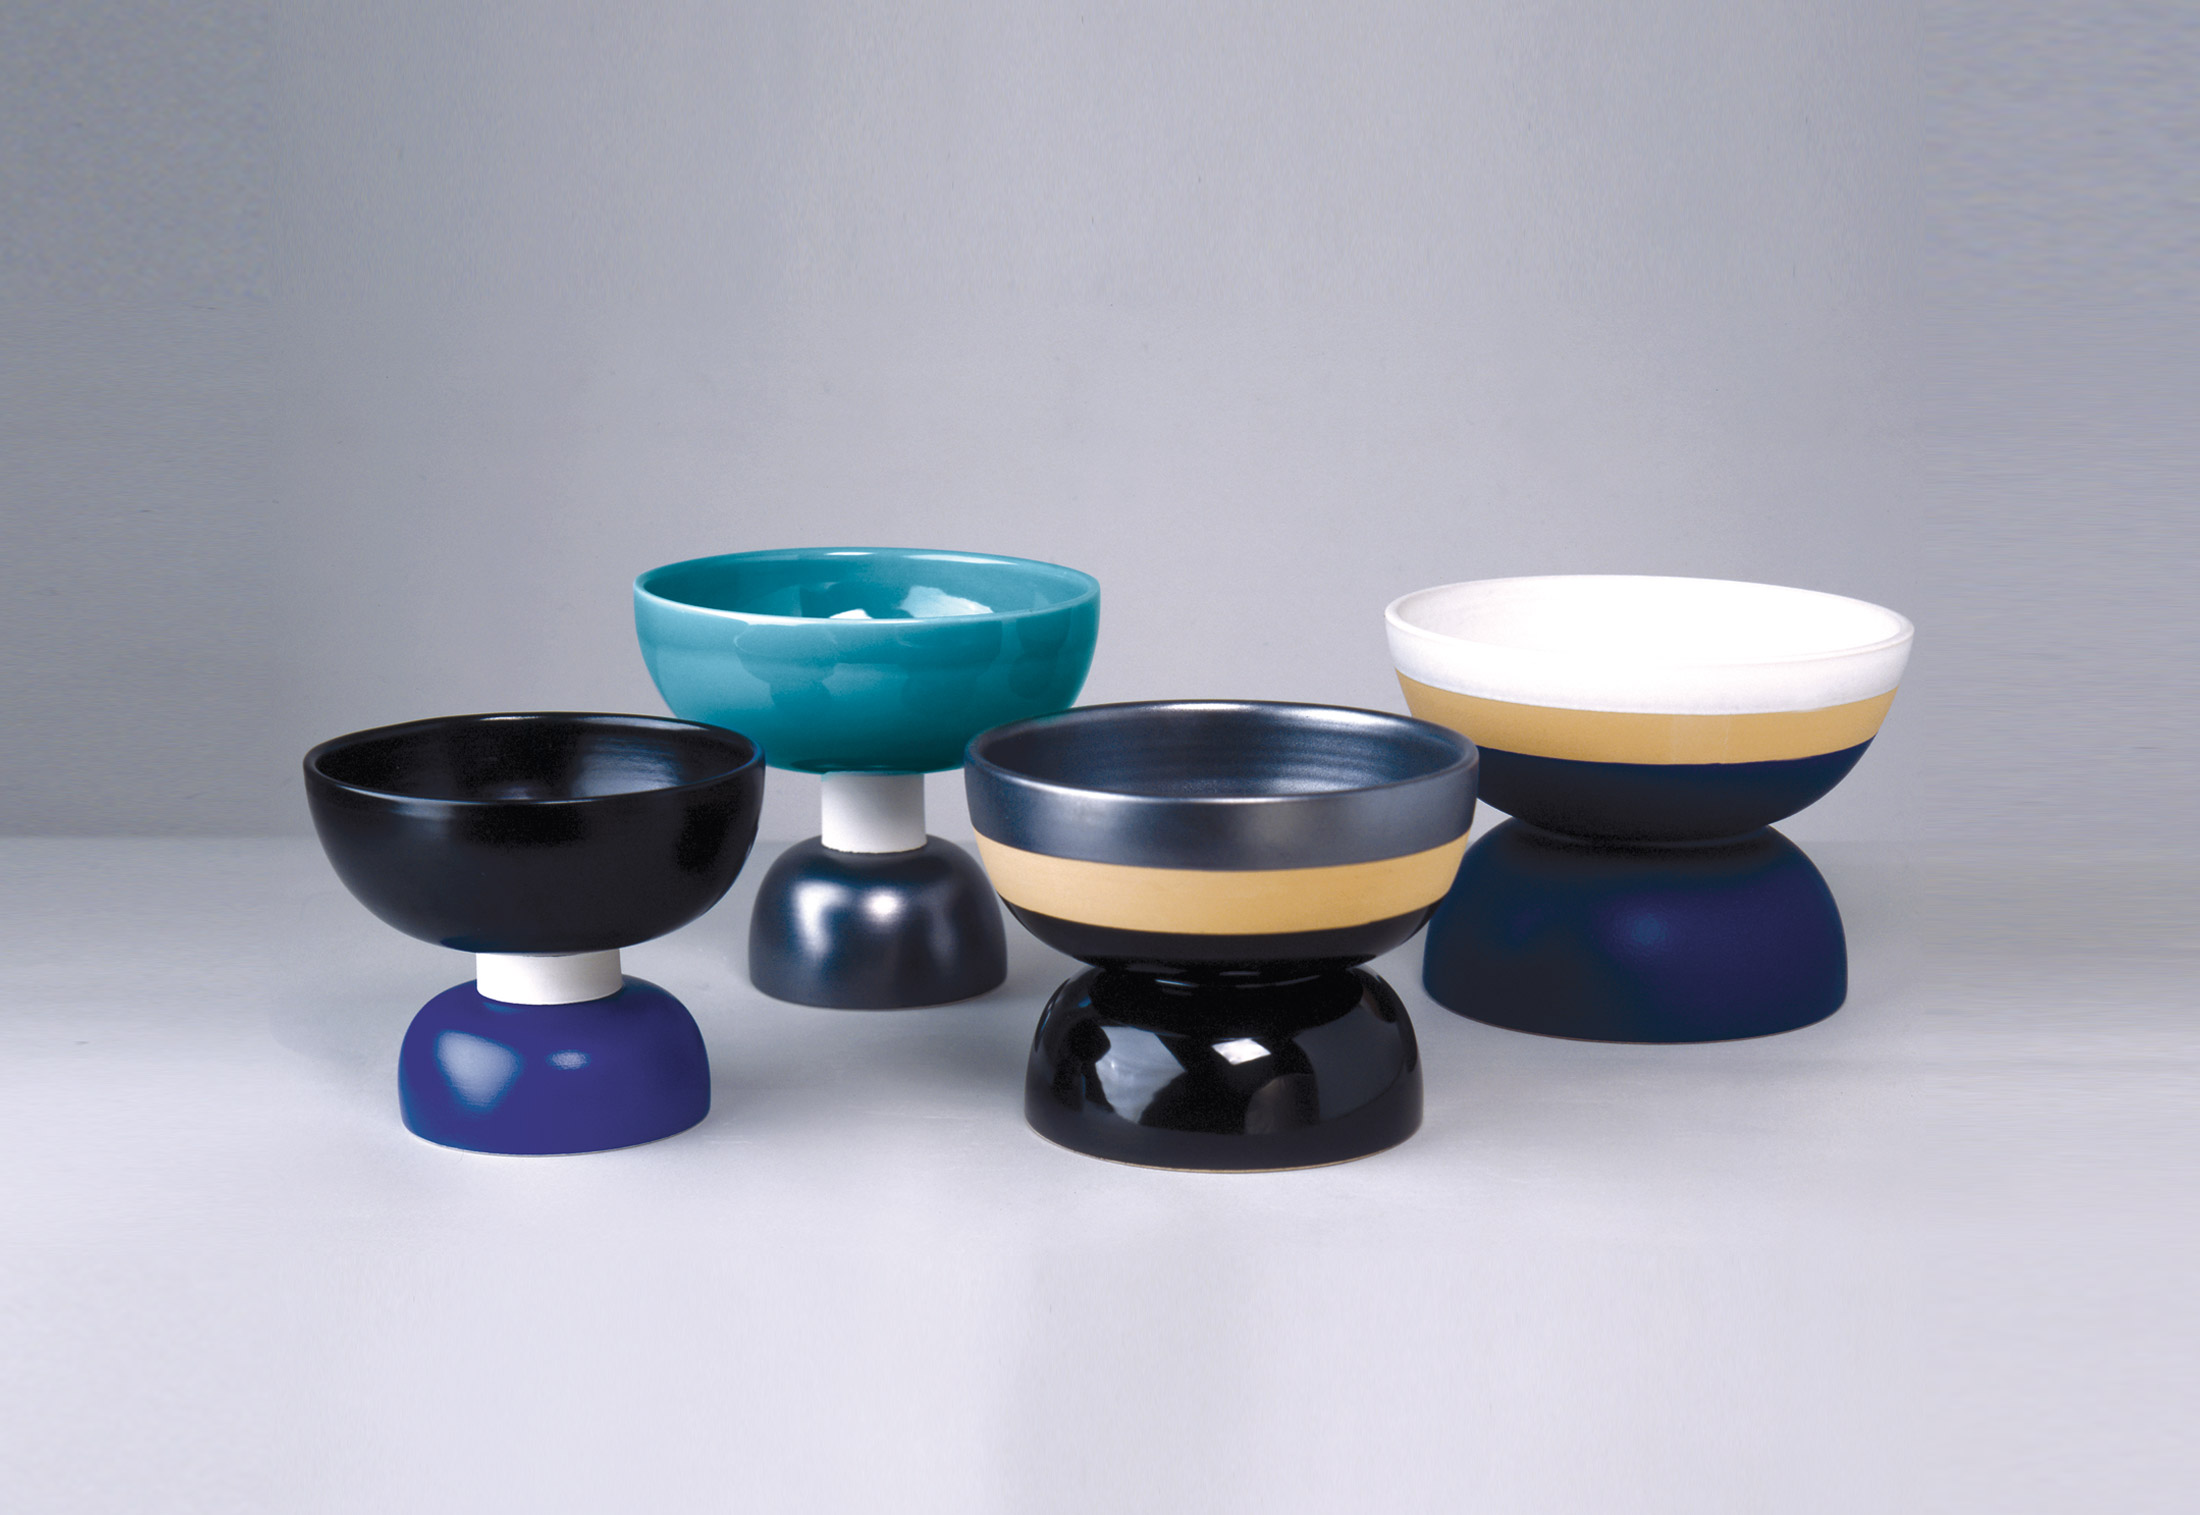 Two-Toned Glossy Turquoise Bowl